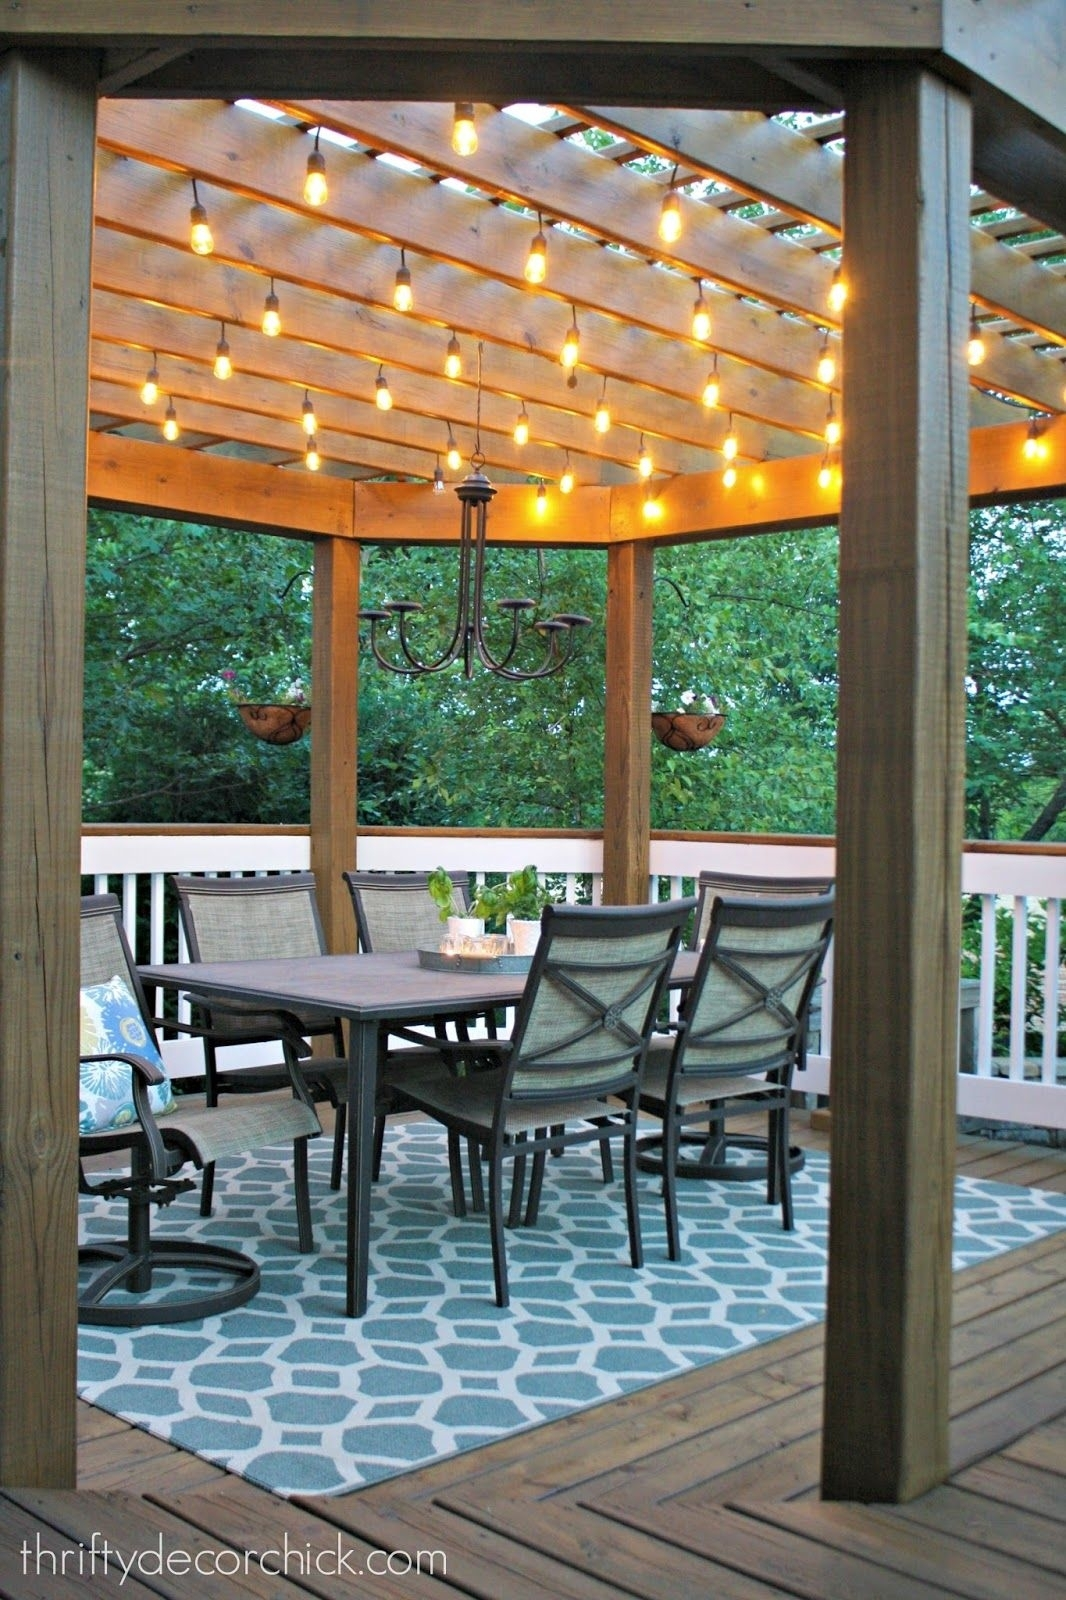 Our Beautiful Outdoor Dining Room | Diy New Home Remodeling For Outdoor Dining Lanterns (View 15 of 20)